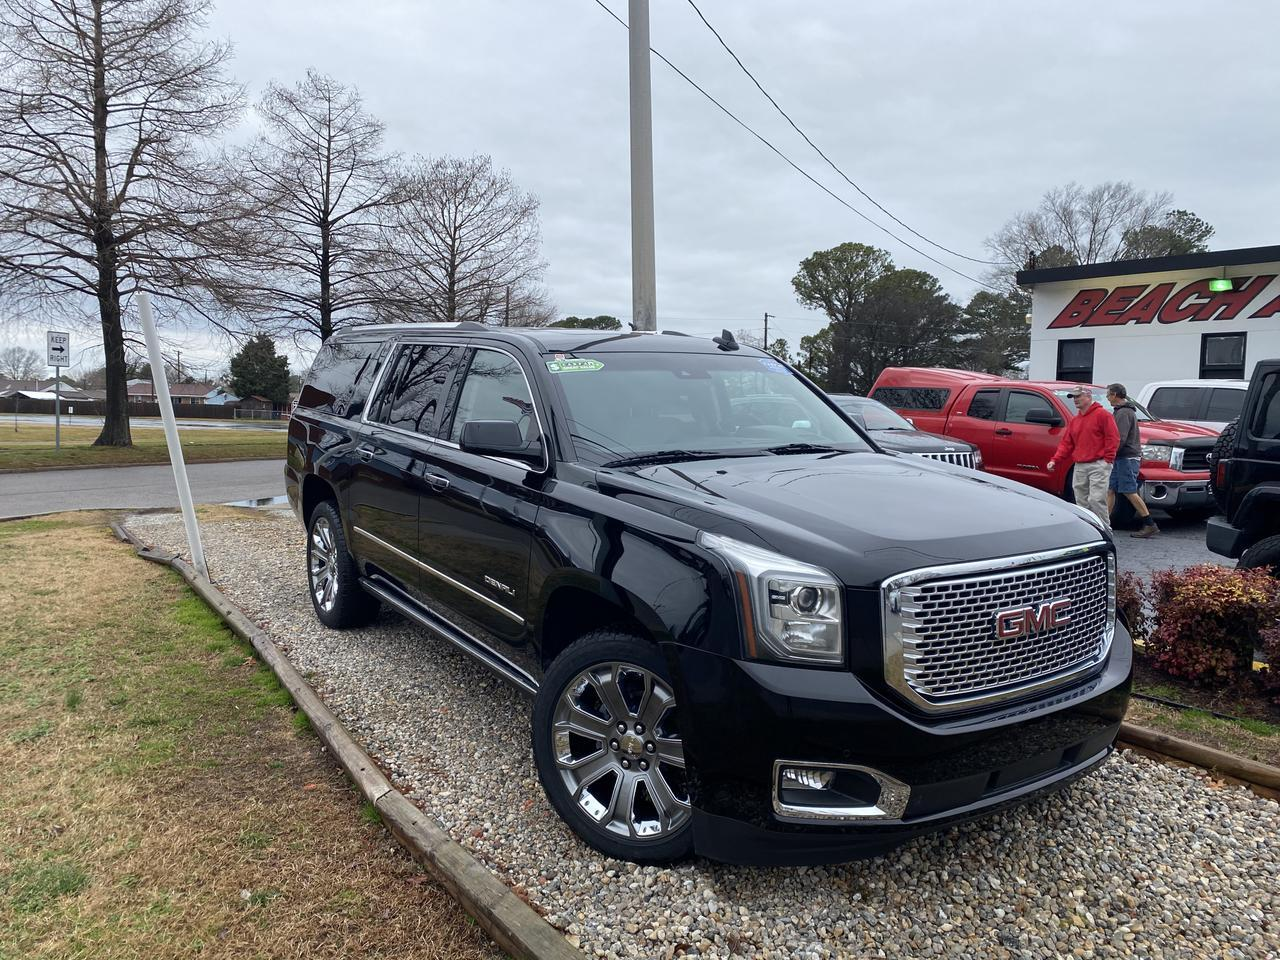 2015 GMC YUKON XL DENALI, WARRANTY, LEATHER, NAV, HEATED/COOLED SEATS, DVD PLAYER, SUNROOF, REMOTE START!